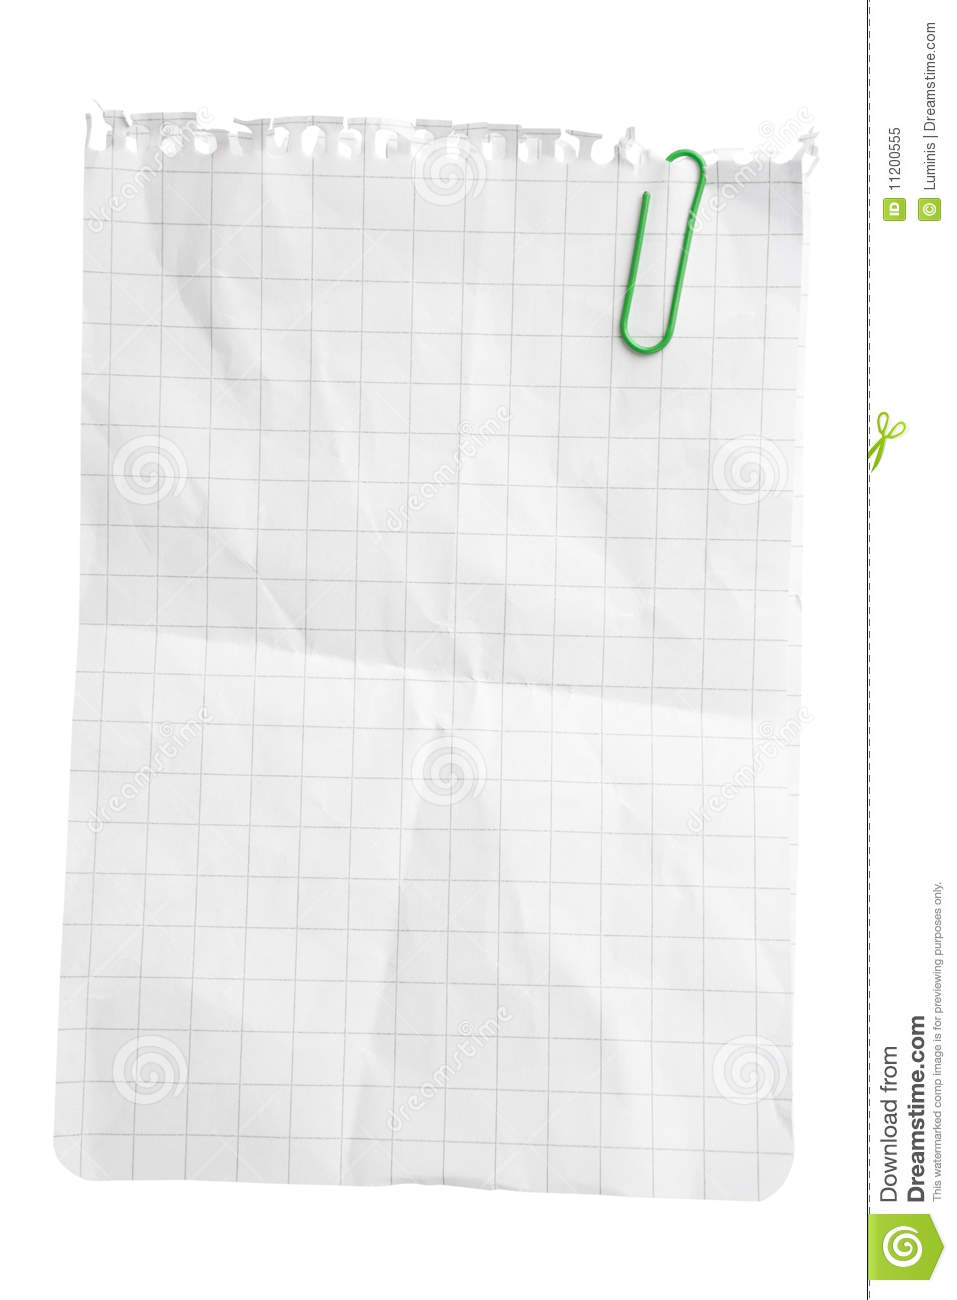 Paper Sheet with Paper Clip